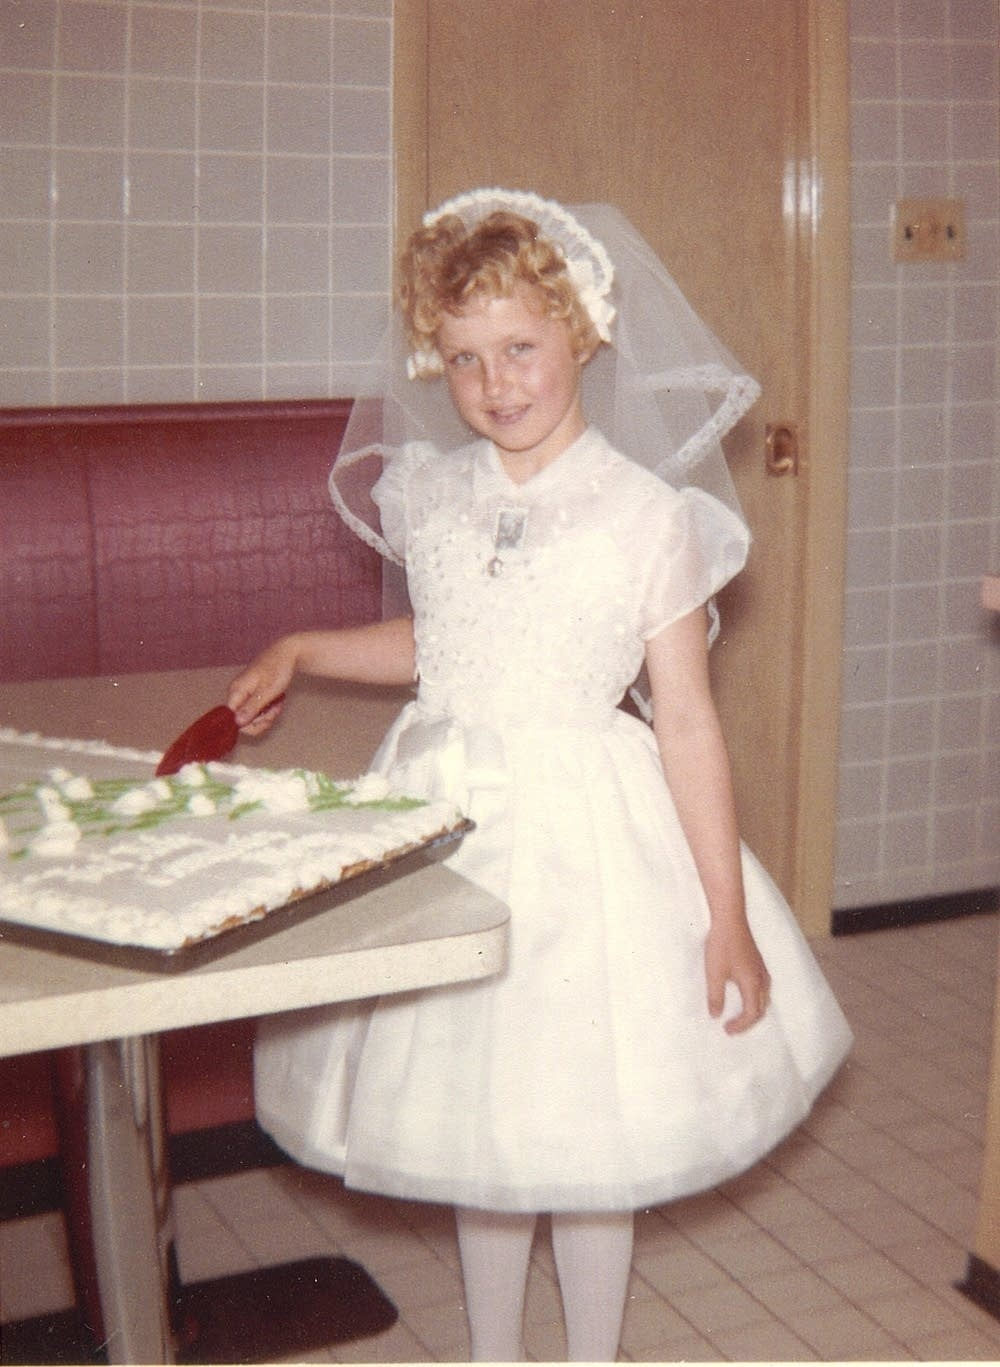 Mary Welke cutting her confirmation cake, 1962